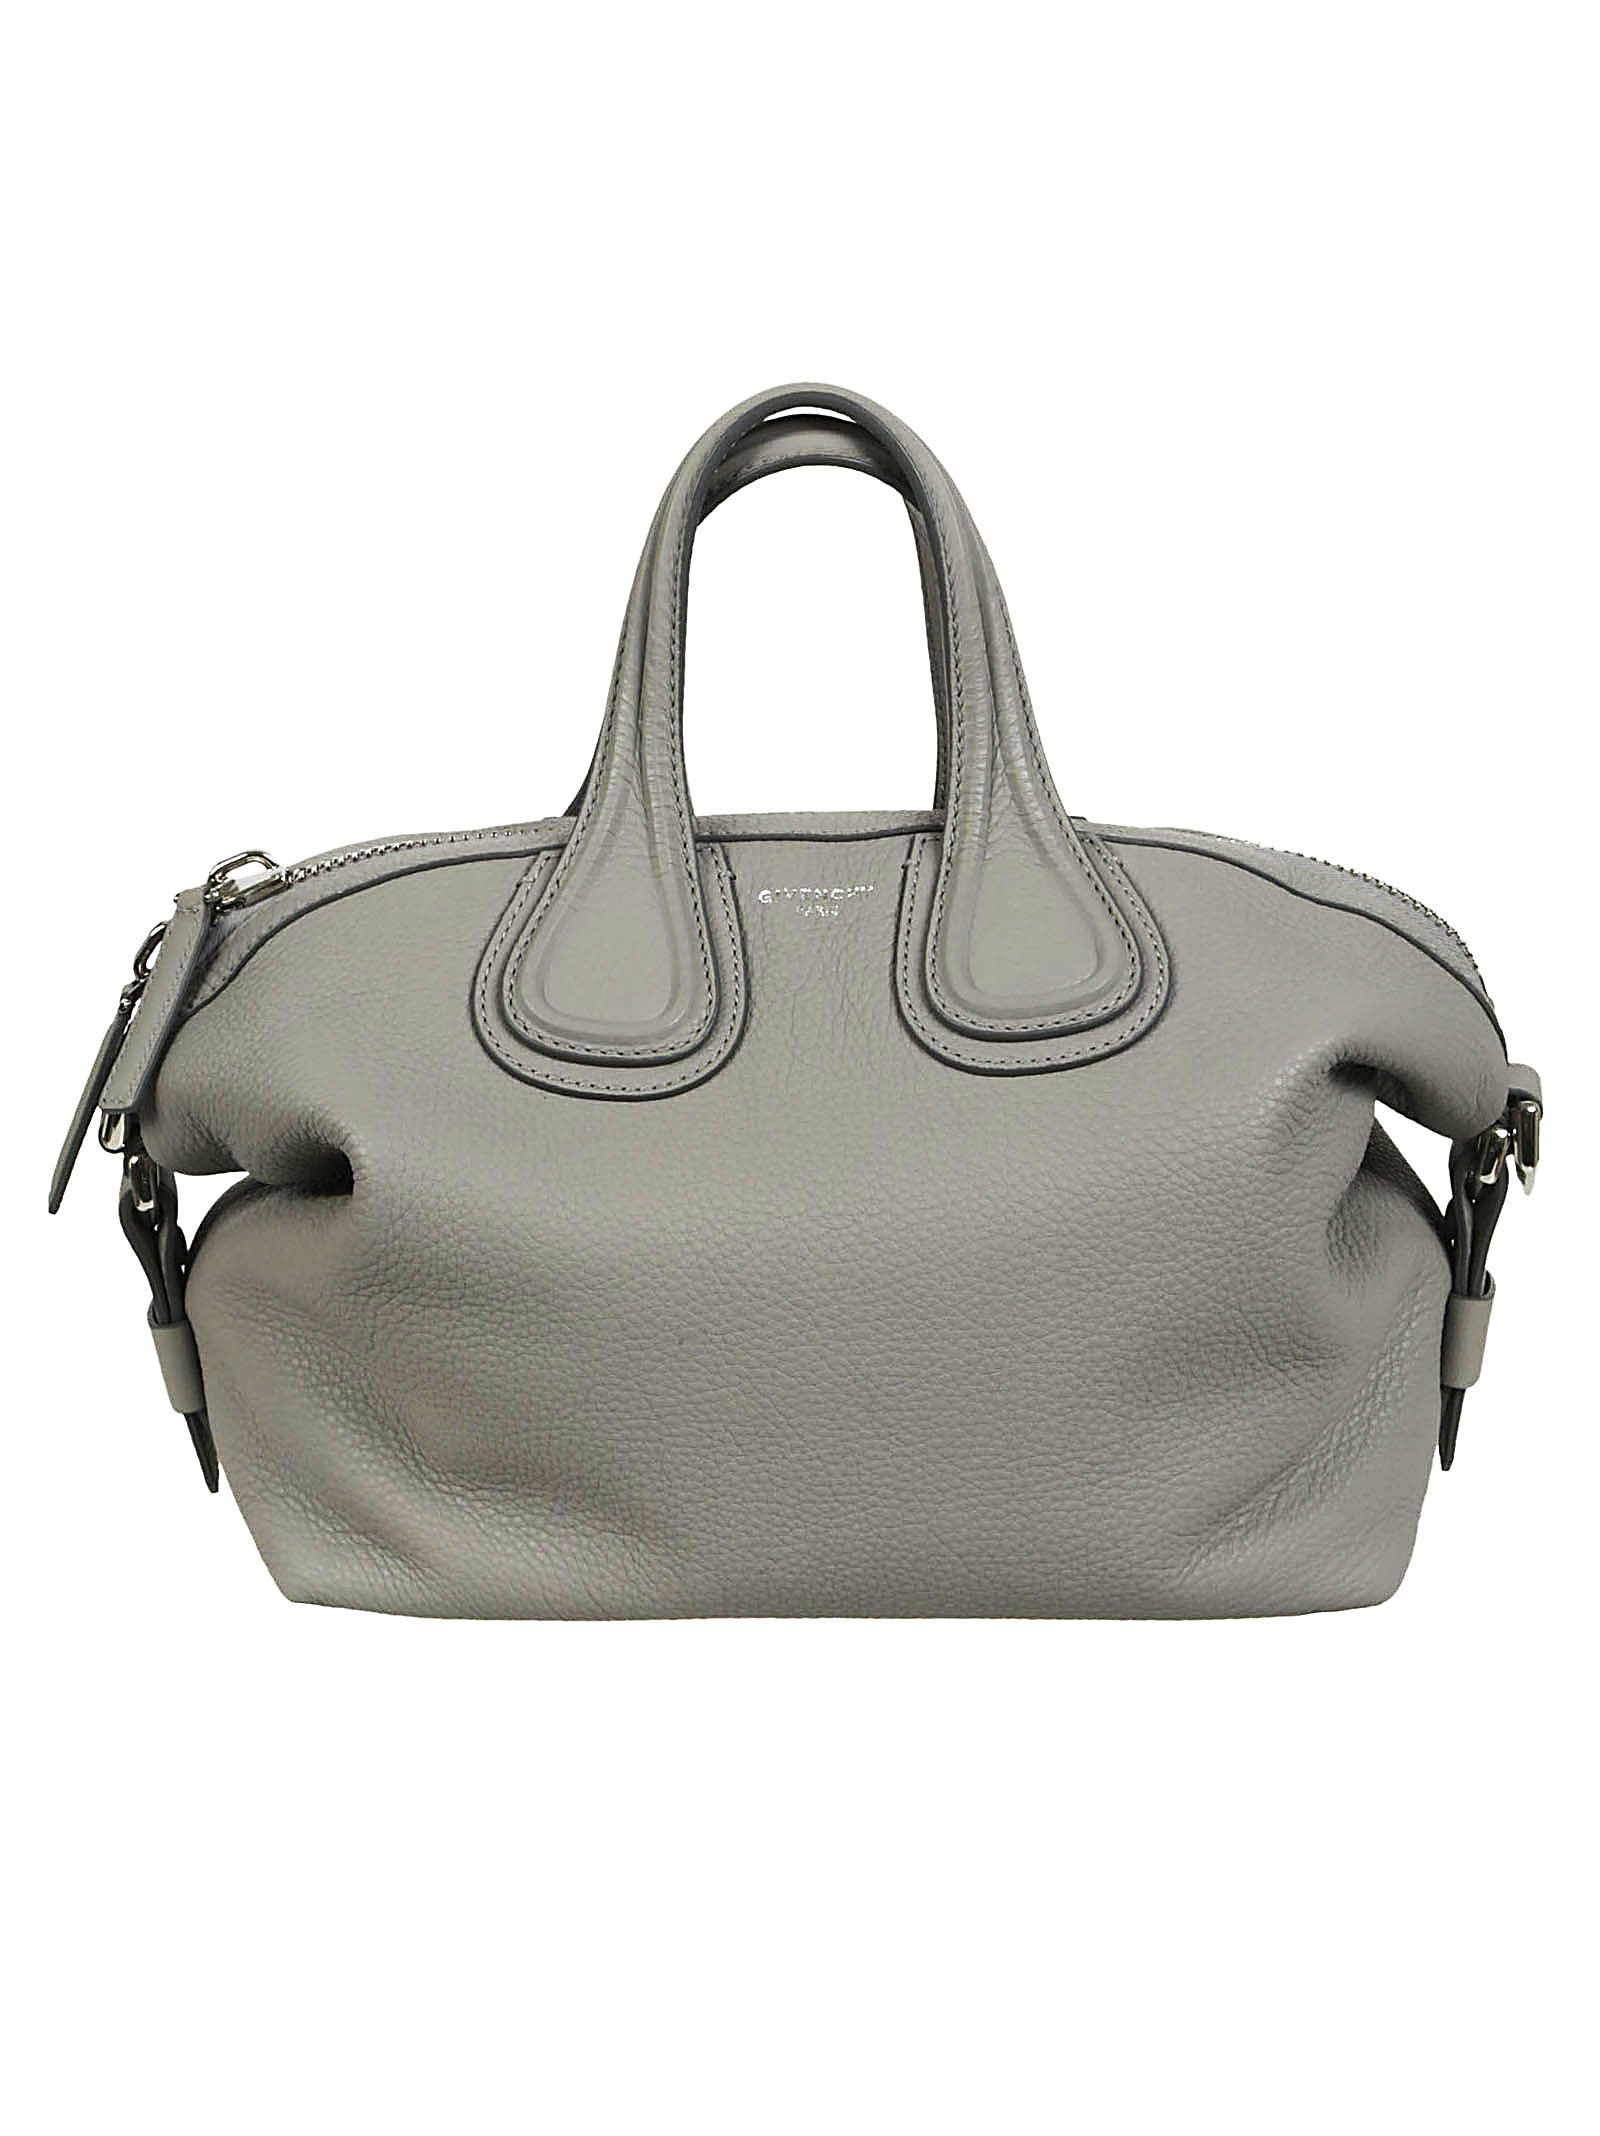 Givenchy Small Nightingale Tote In Grey   ModeSens ee0691ab32